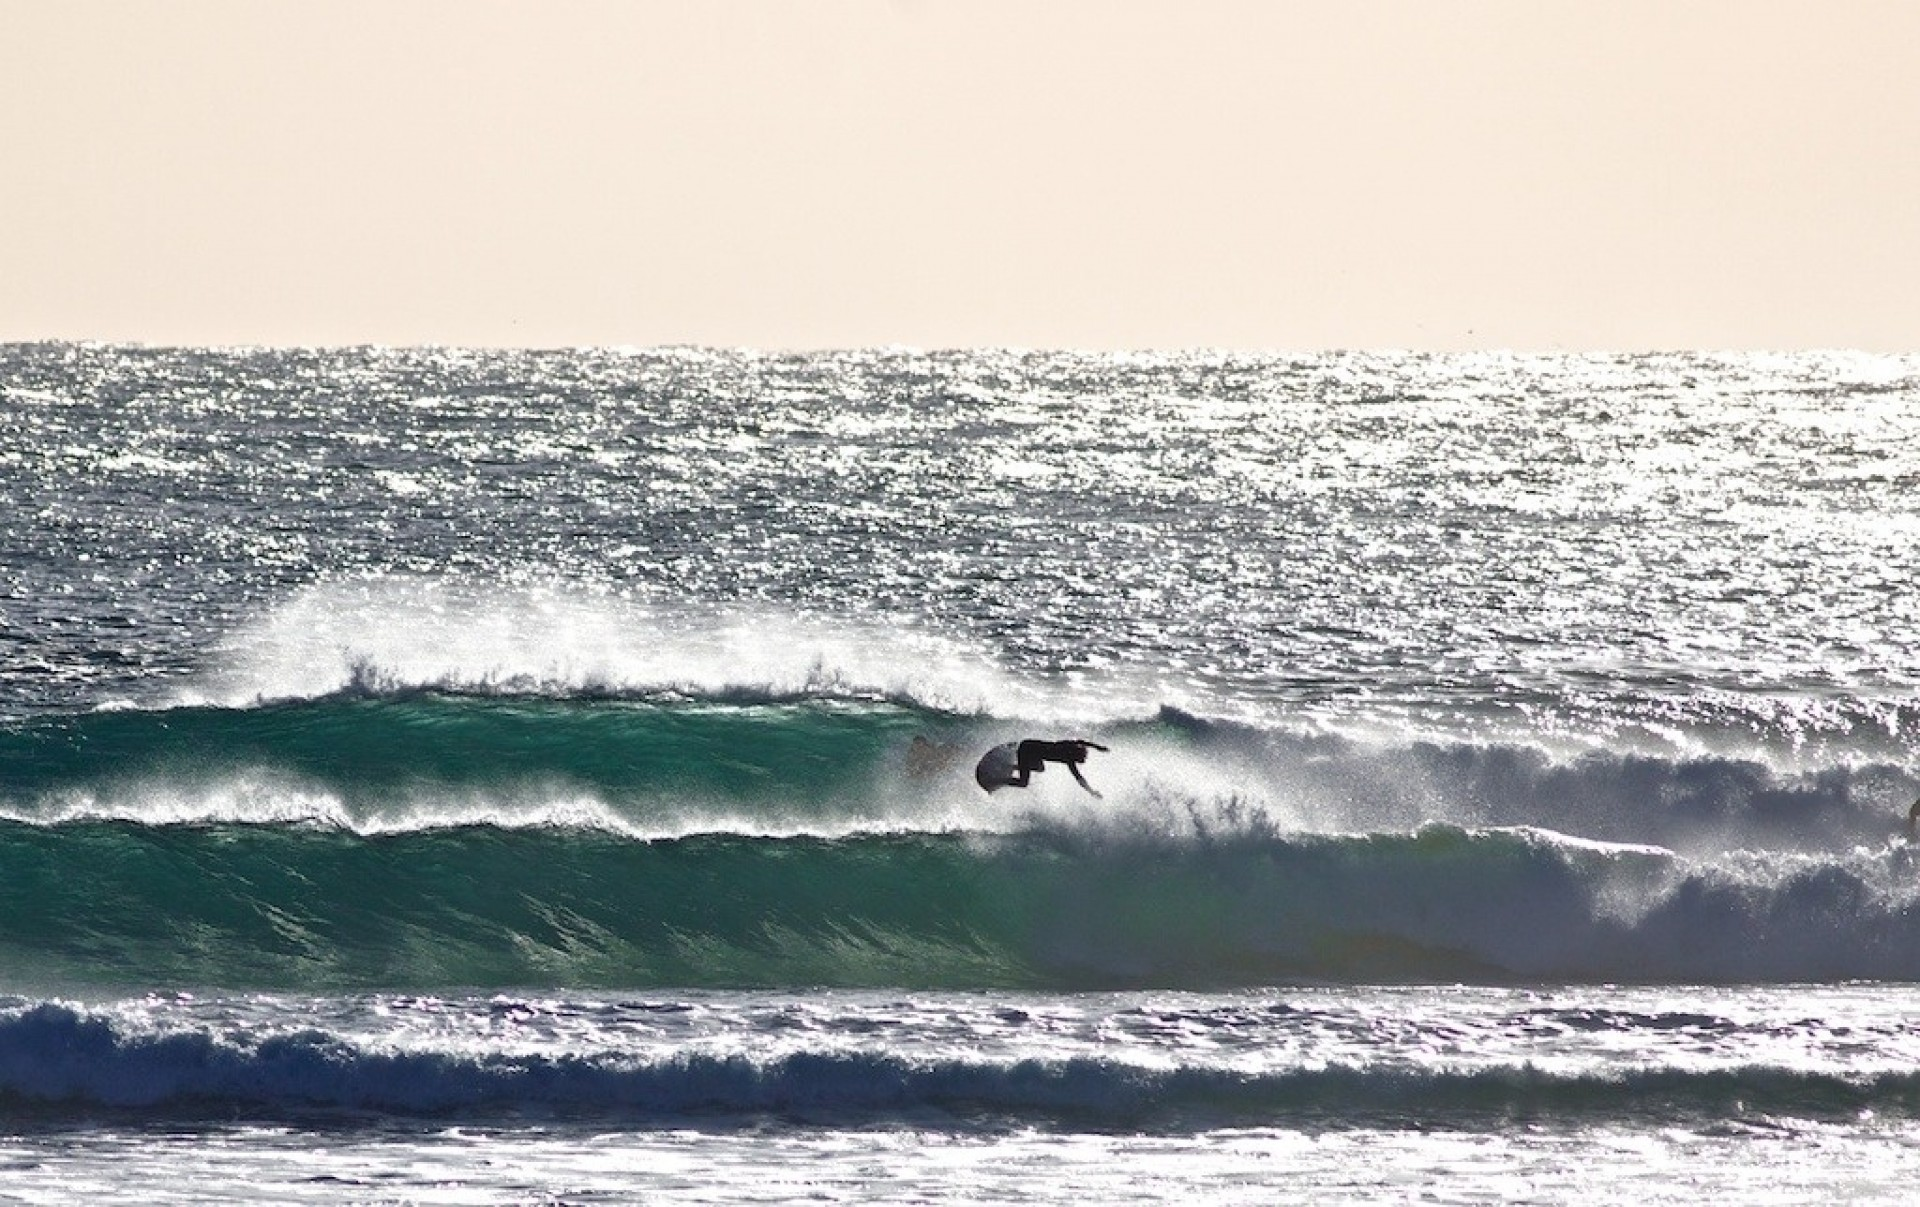 Jaka Adamic's photo of Snapper Rocks